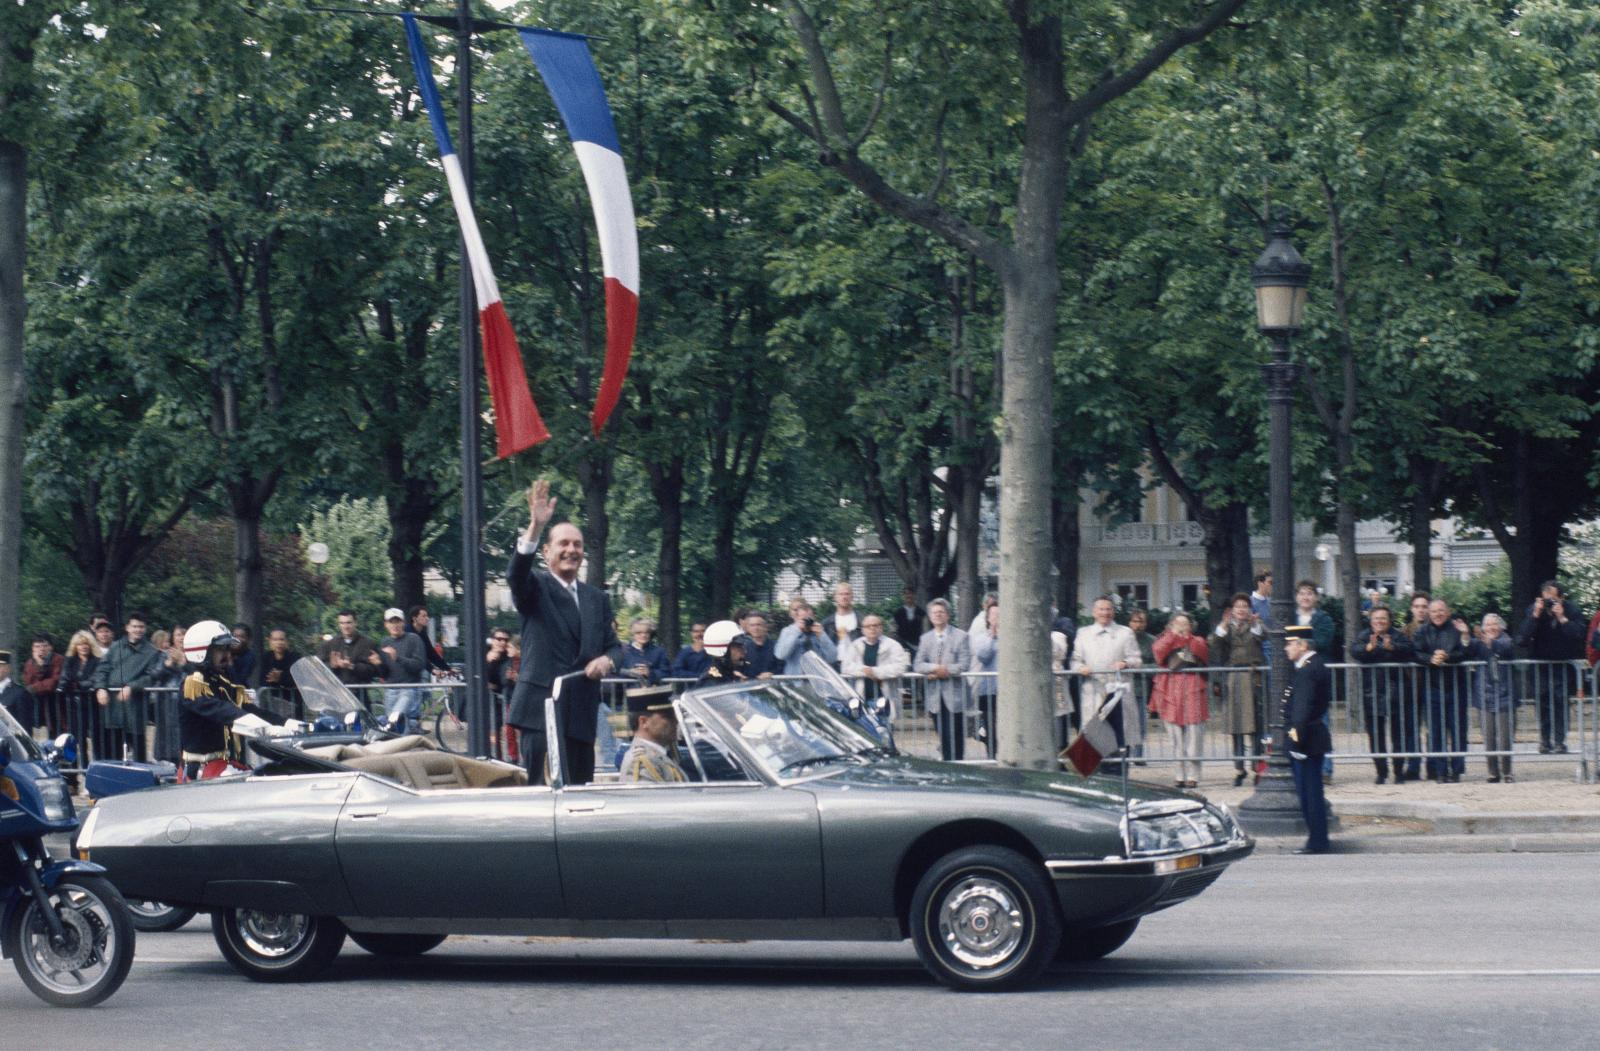 Jacques Chirac aboard the presidential SM - 1995